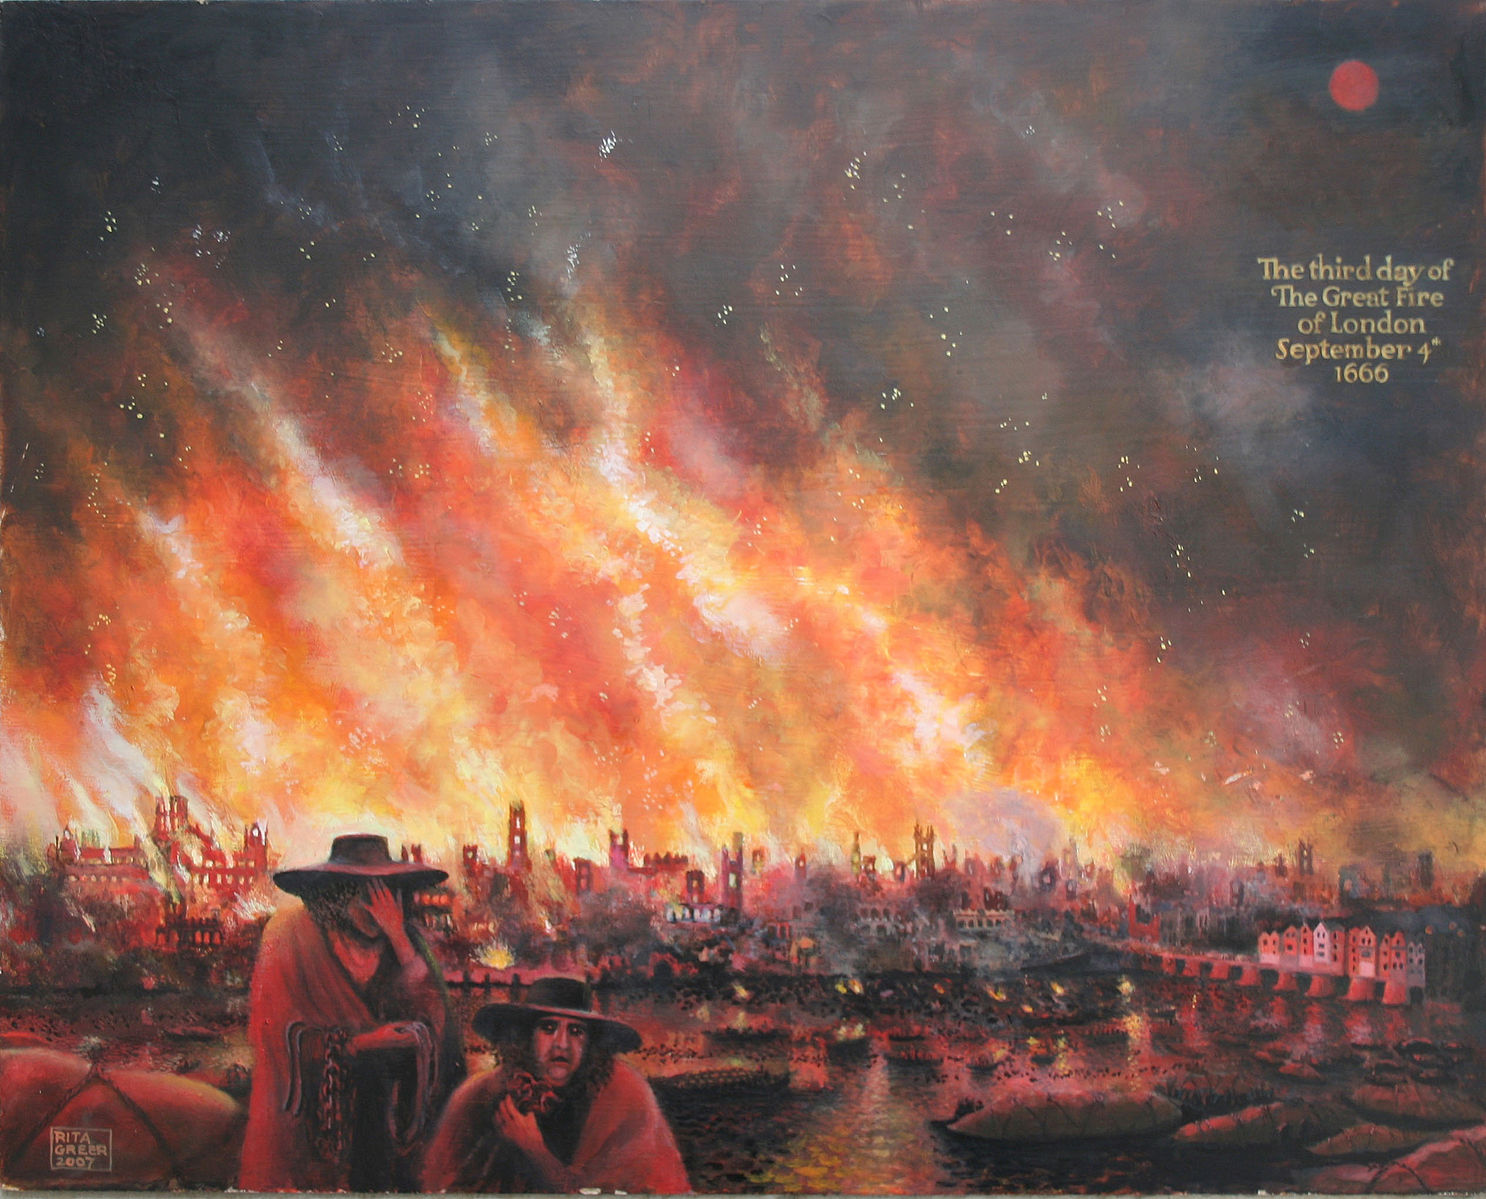 8_The_Great_Fire_of_London_1666.JPG